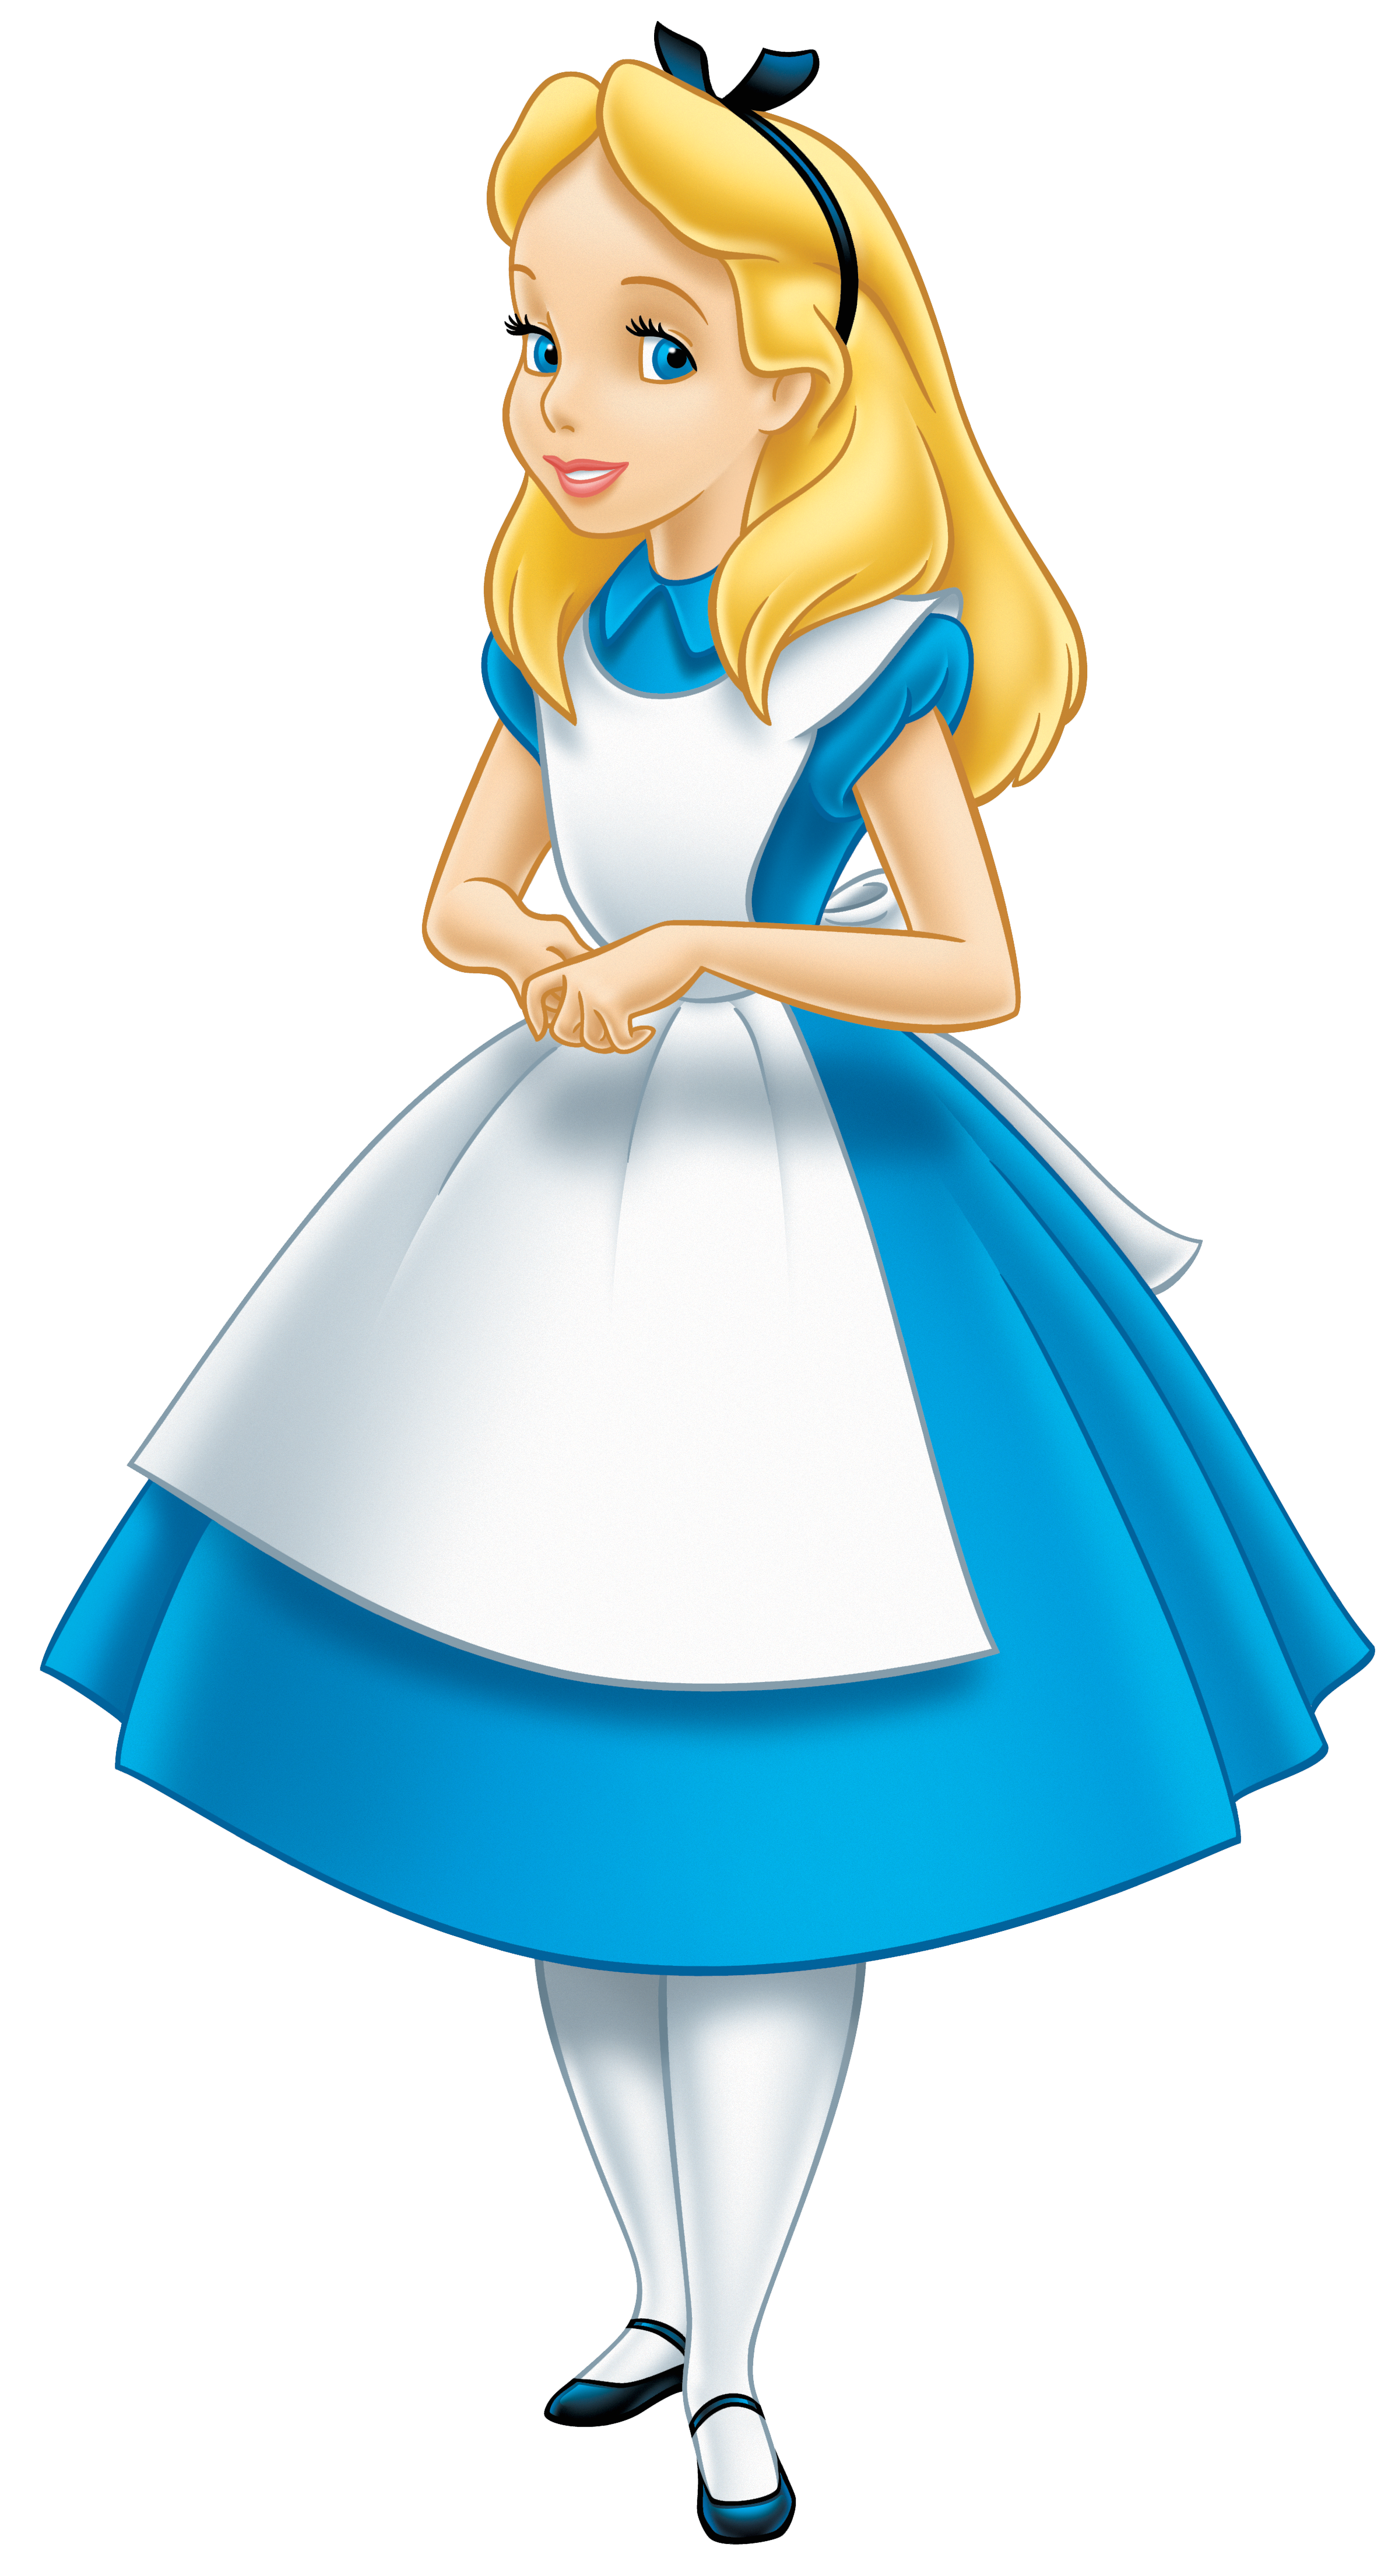 Alice dress clipart royalty free Transparent Alice Clipart | Gallery Yopriceville - High-Quality ... royalty free